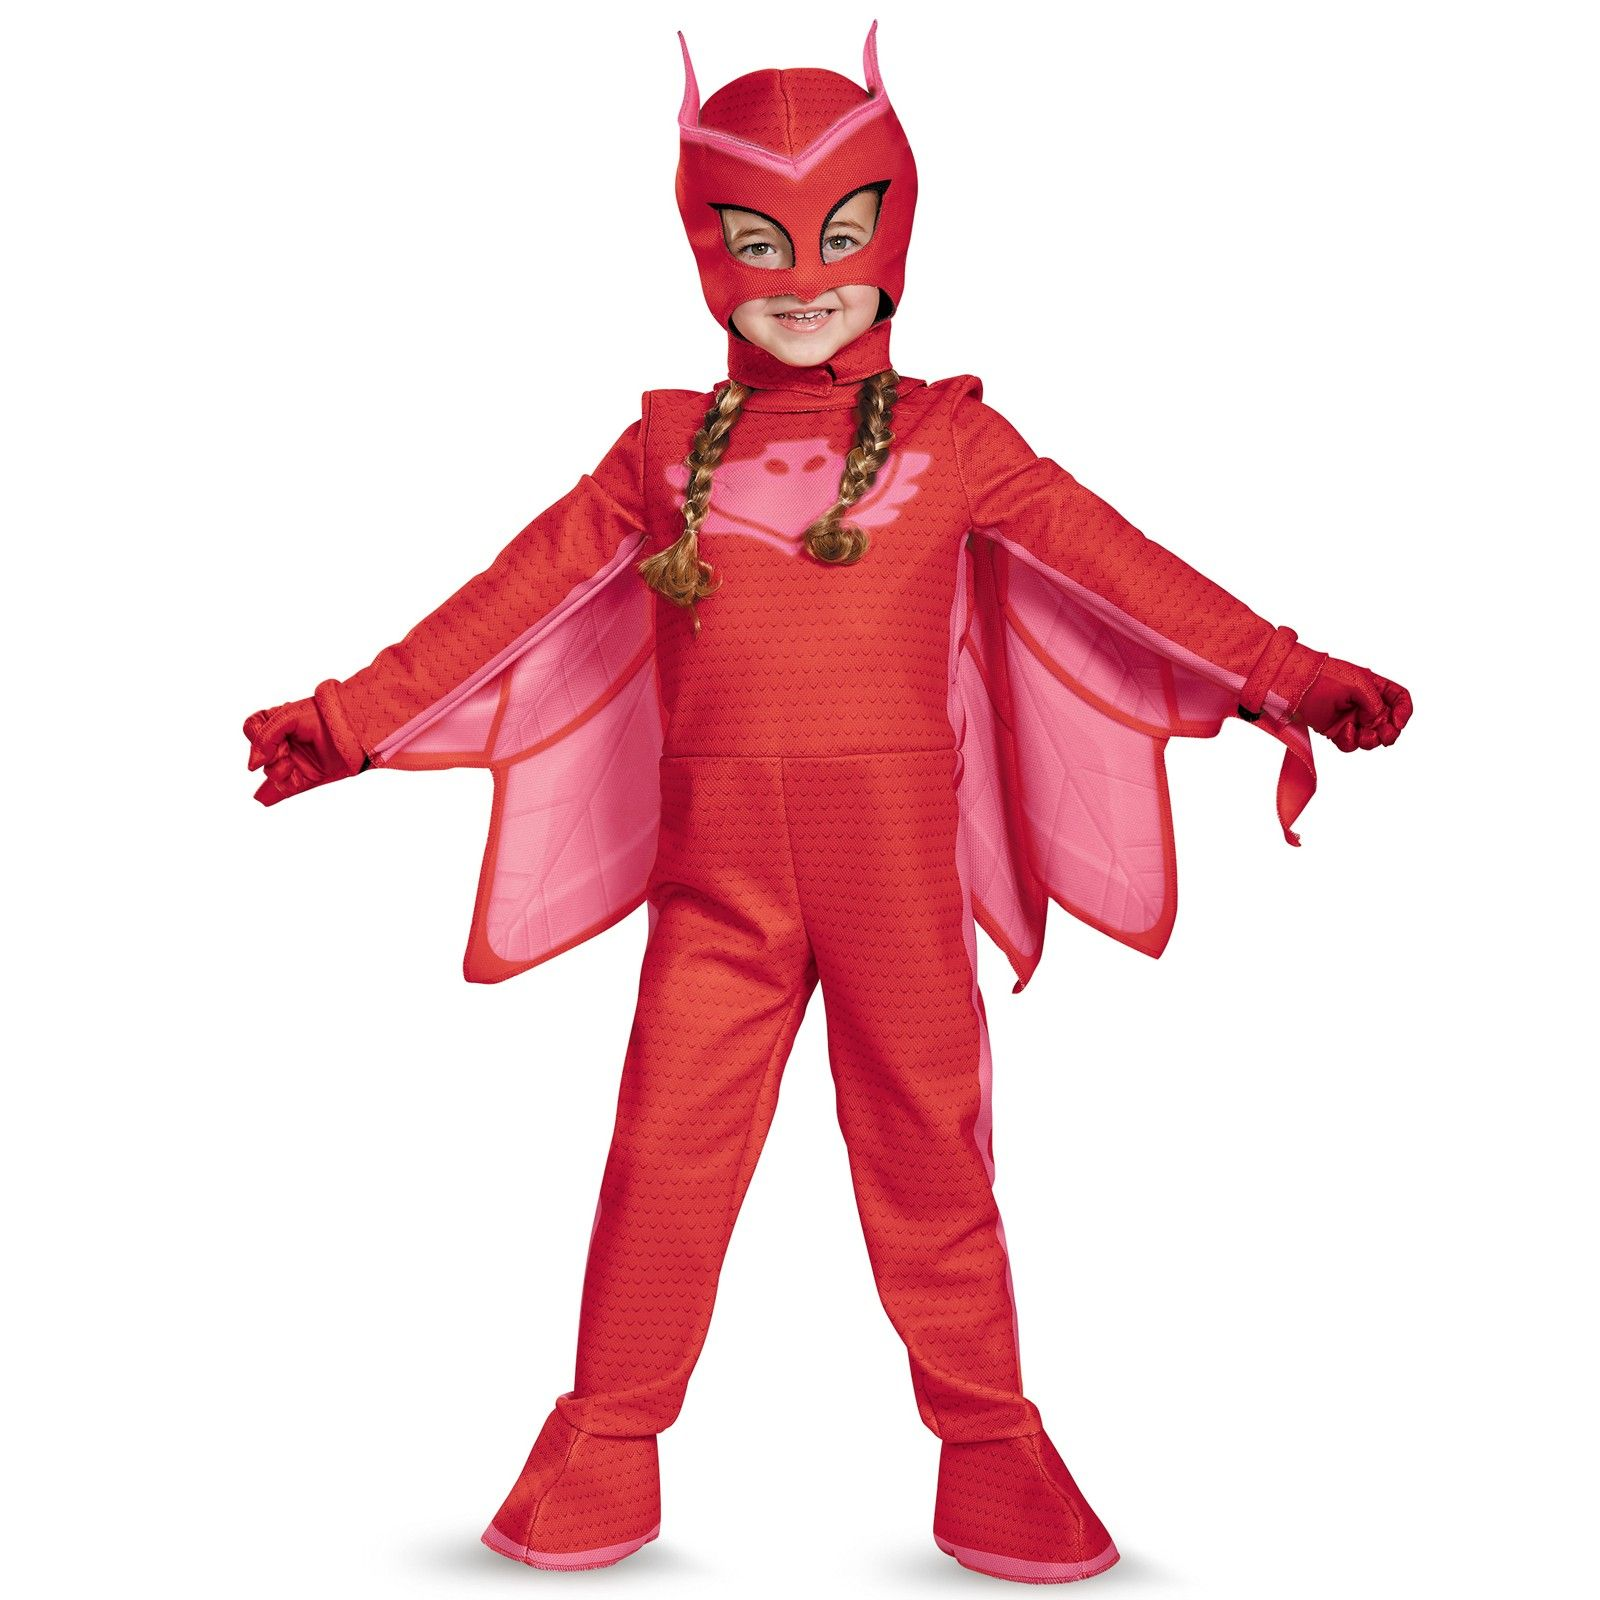 PJ Masks Owlette Deluxe Child Costume | Pj mask and Children costumes